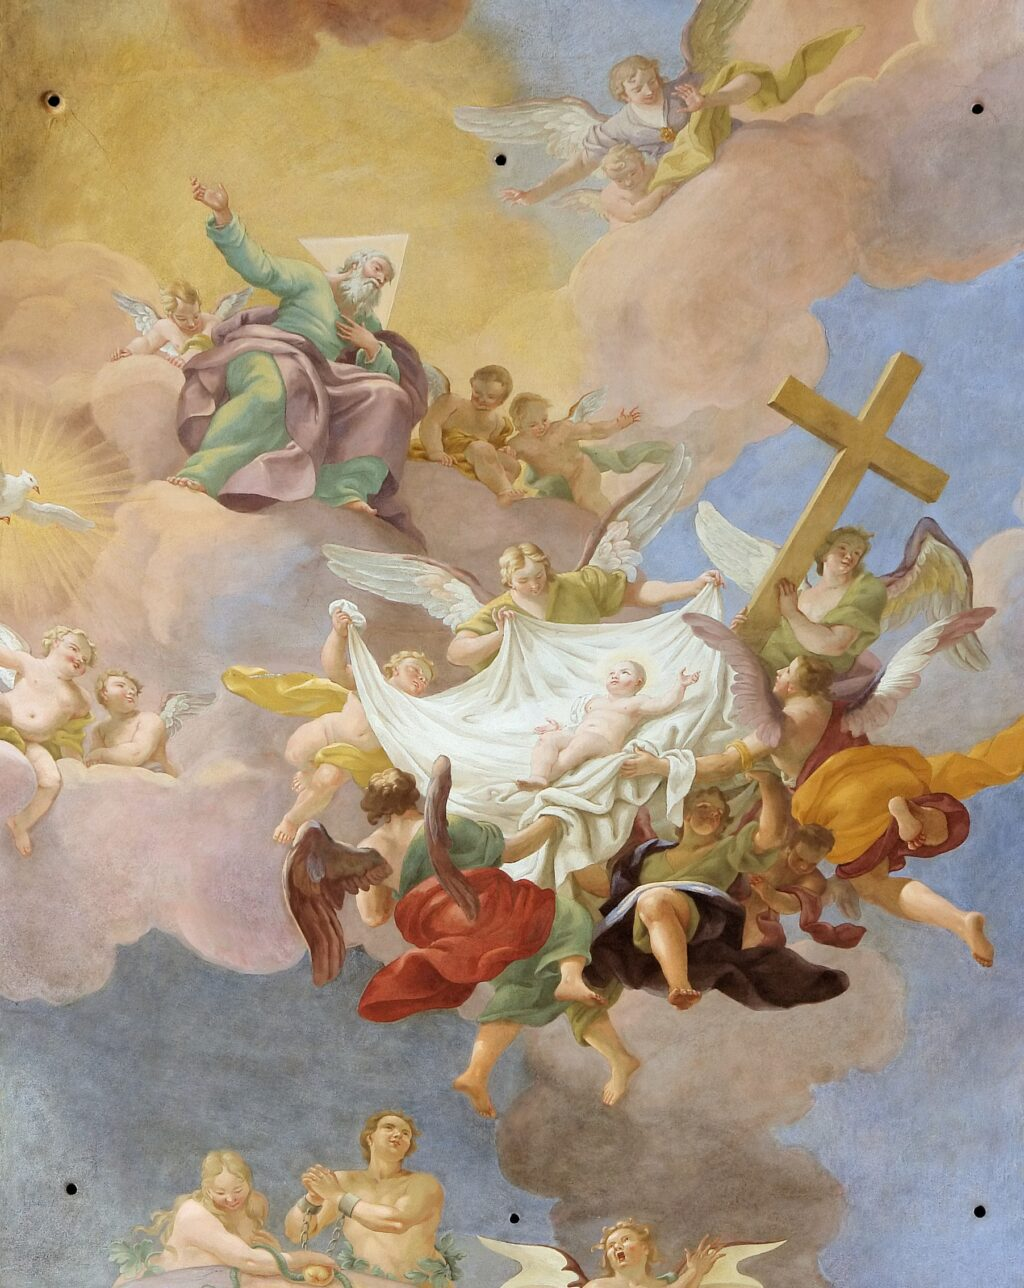 Detail - Glory of the New Born Christ in presence of God Father and the Holy Spirit (Annakirche, Vienna)